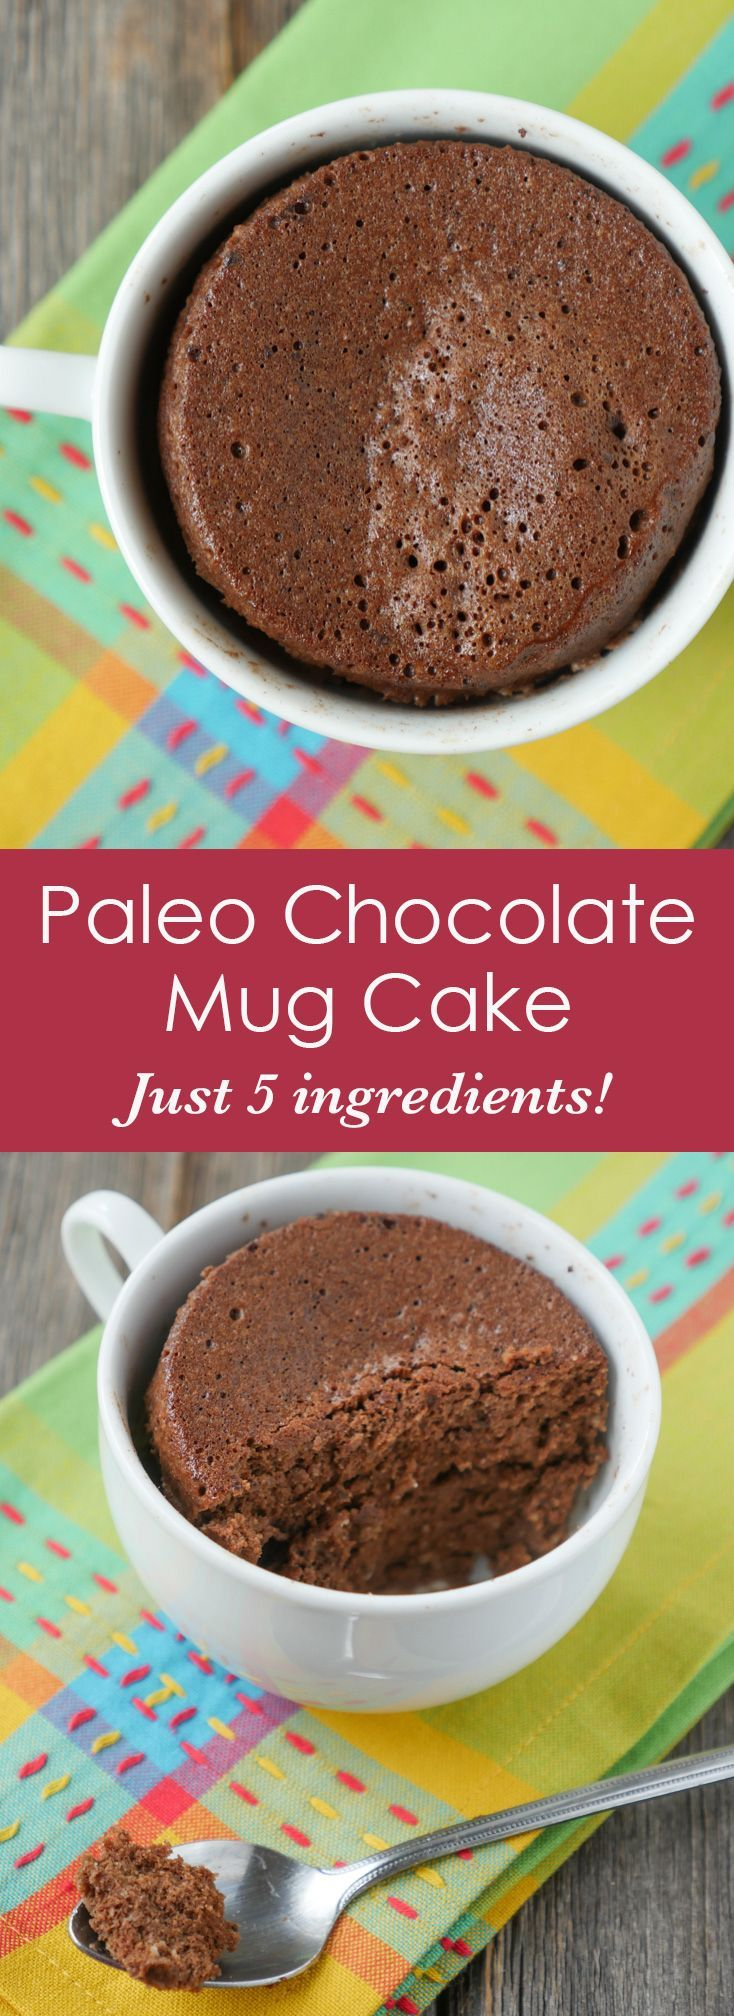 5 Ingredient Paleo Chocolate Mug Cake takes MINUTES to make!! #paleo #chocolate